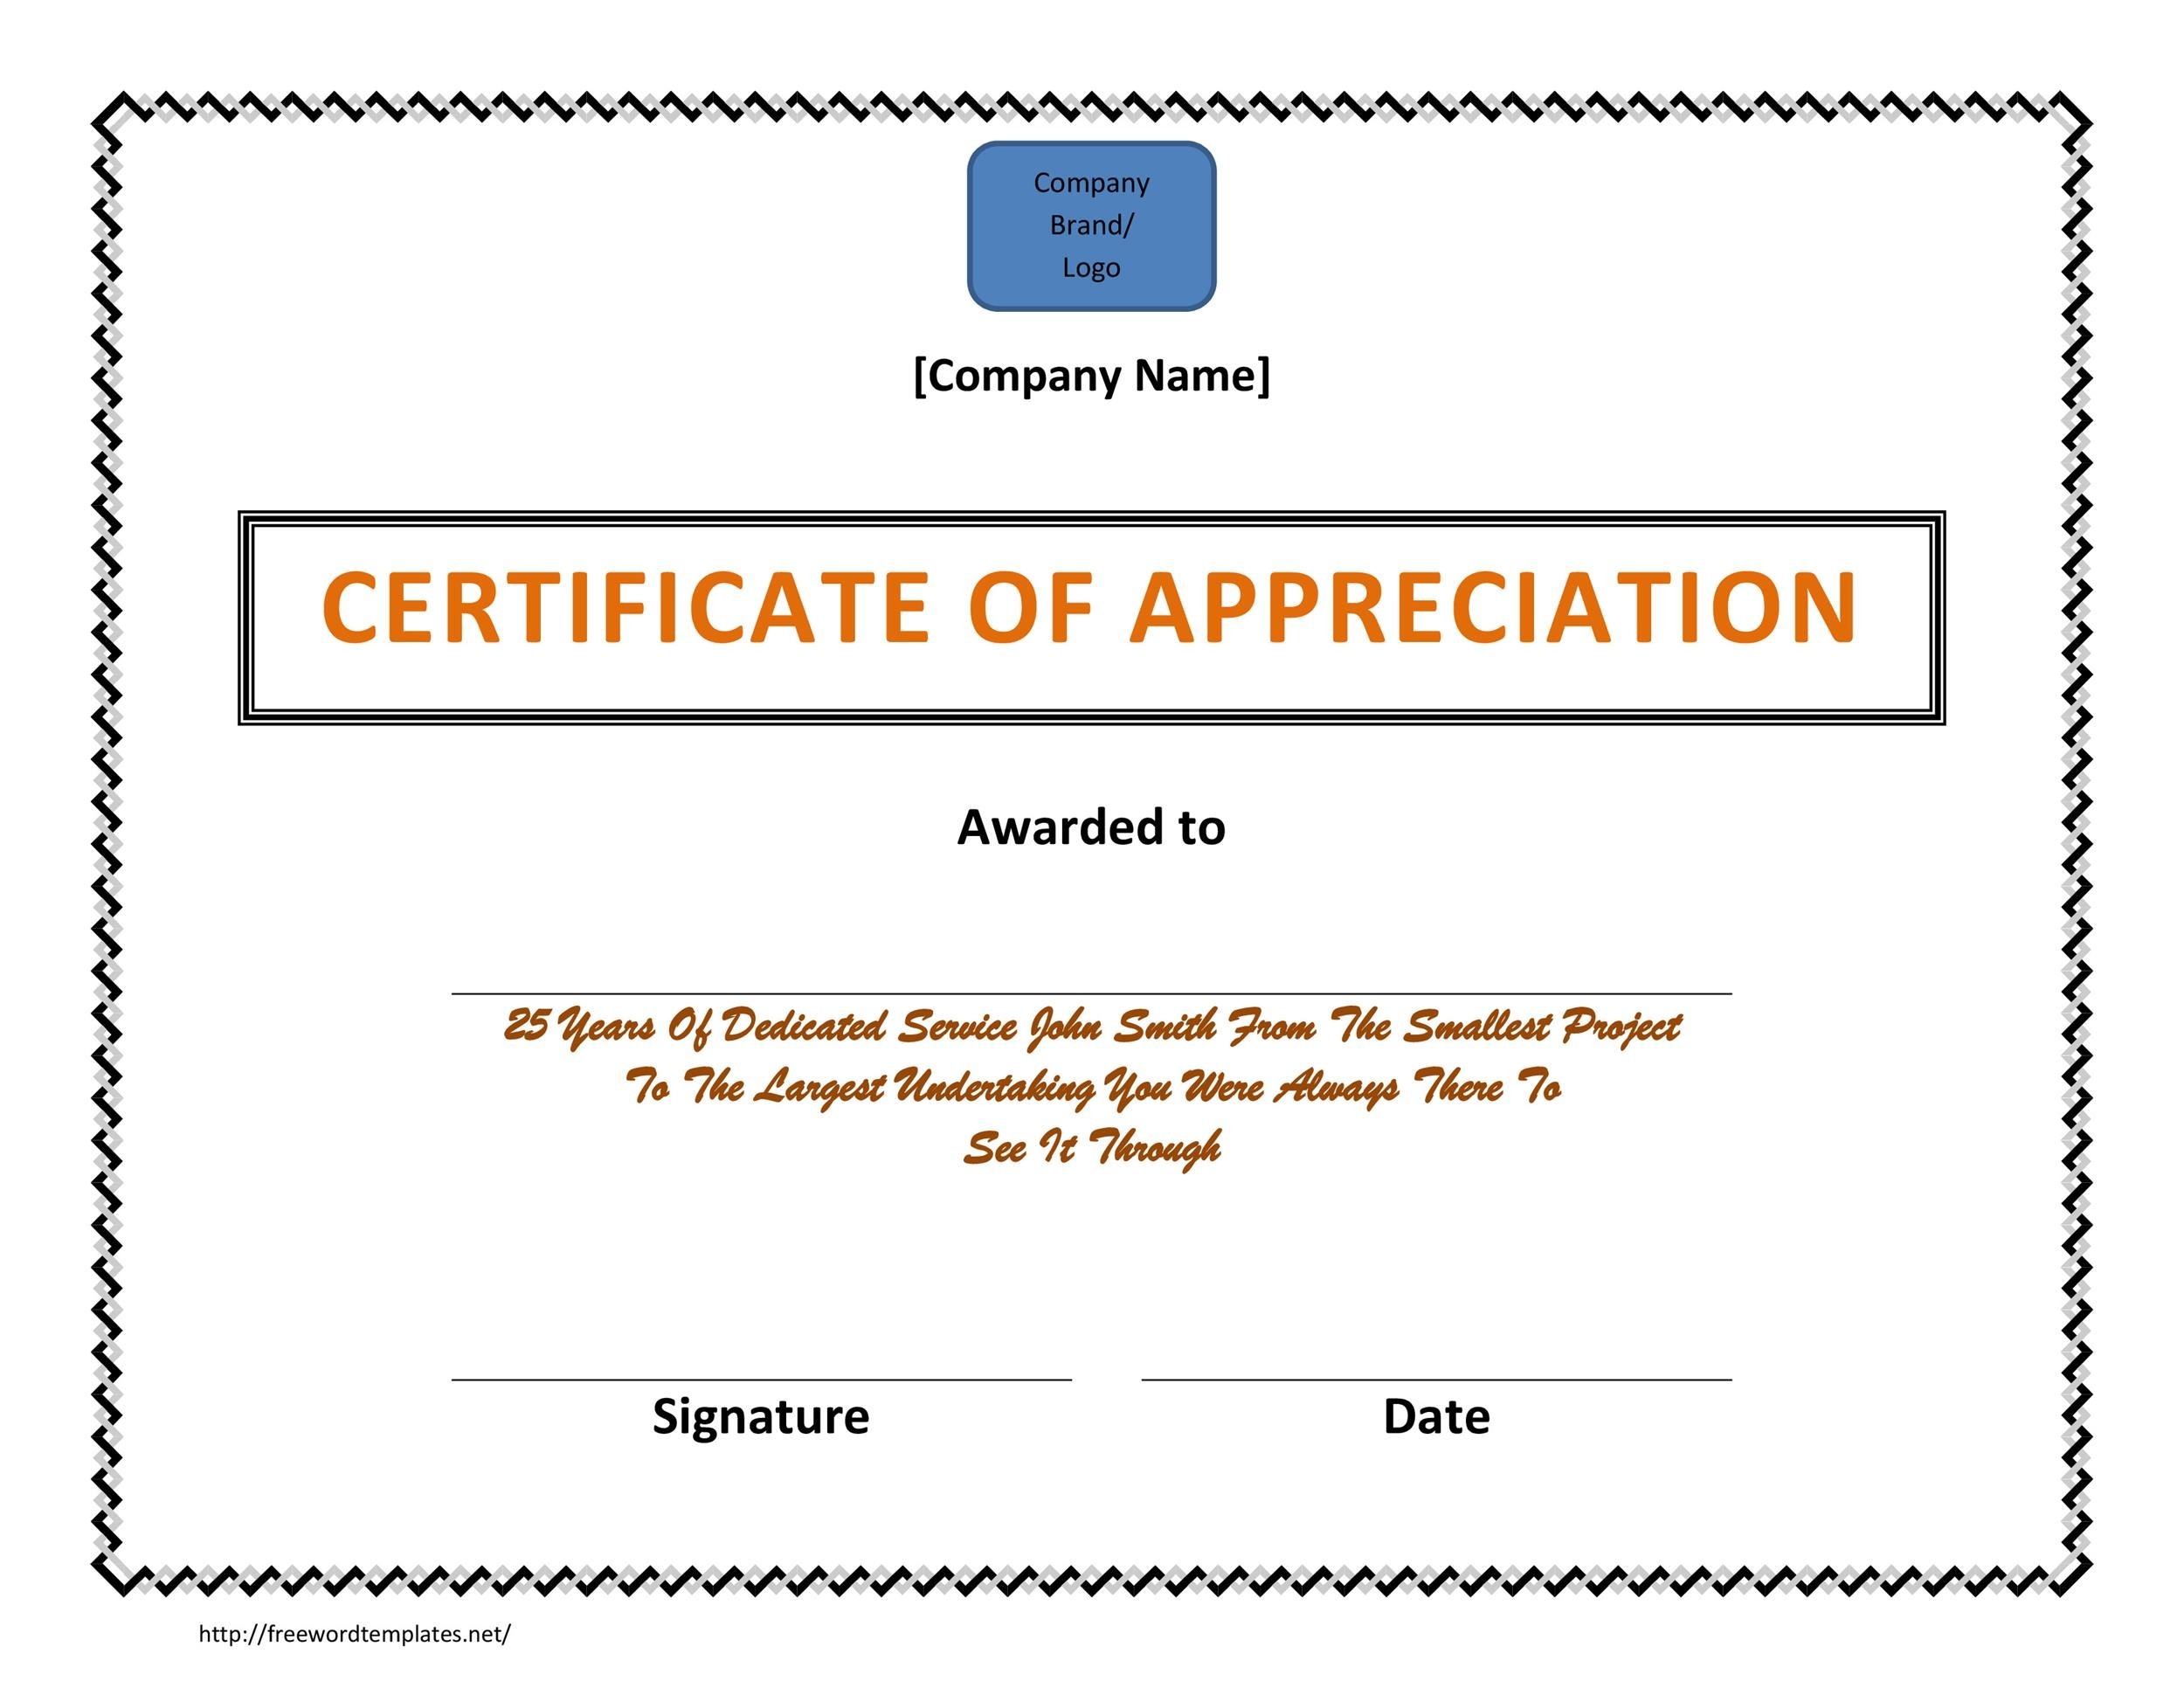 printable certificate of appreciation 05